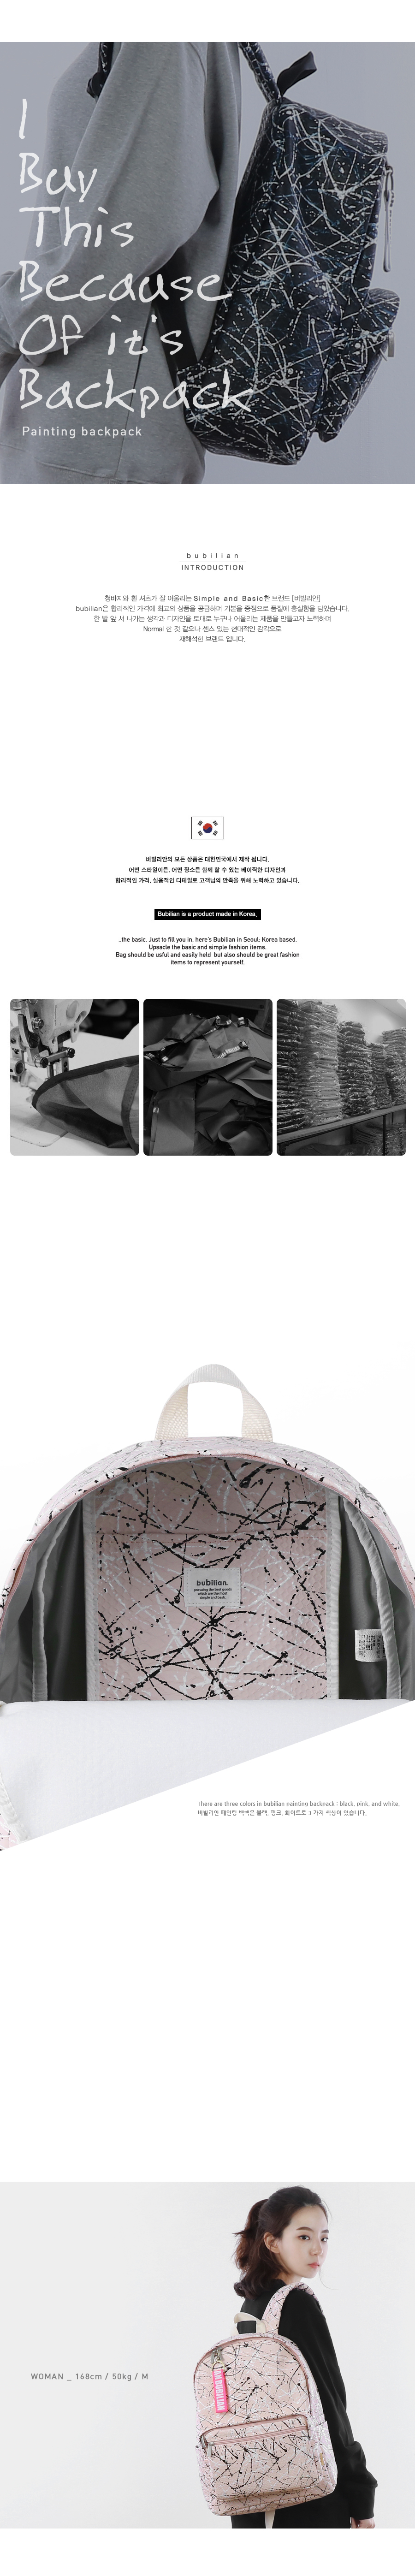 Bubilian Painting Backpack _pink - 버빌리안, 39,900원, 백팩, 인조가죽백팩